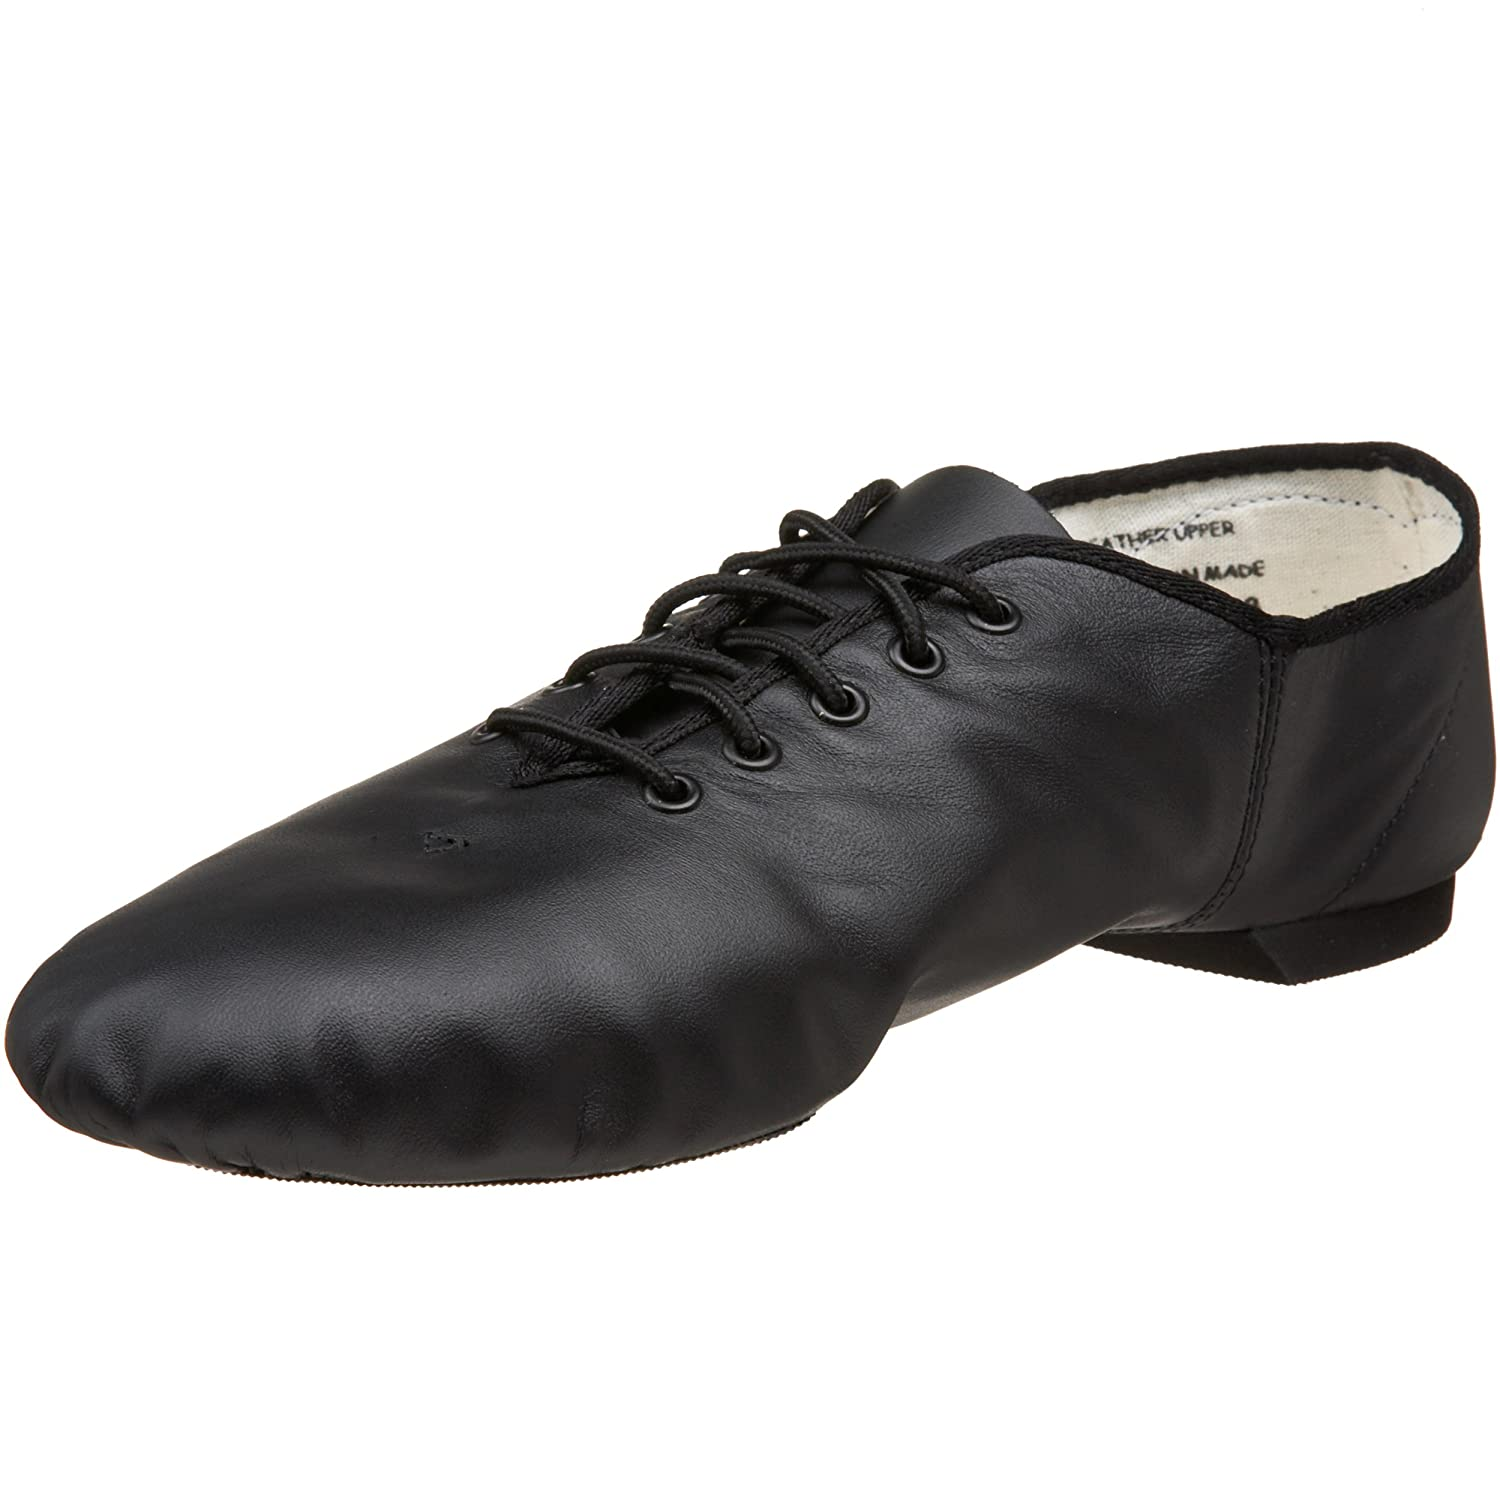 Capezio Dance Shoes Mens